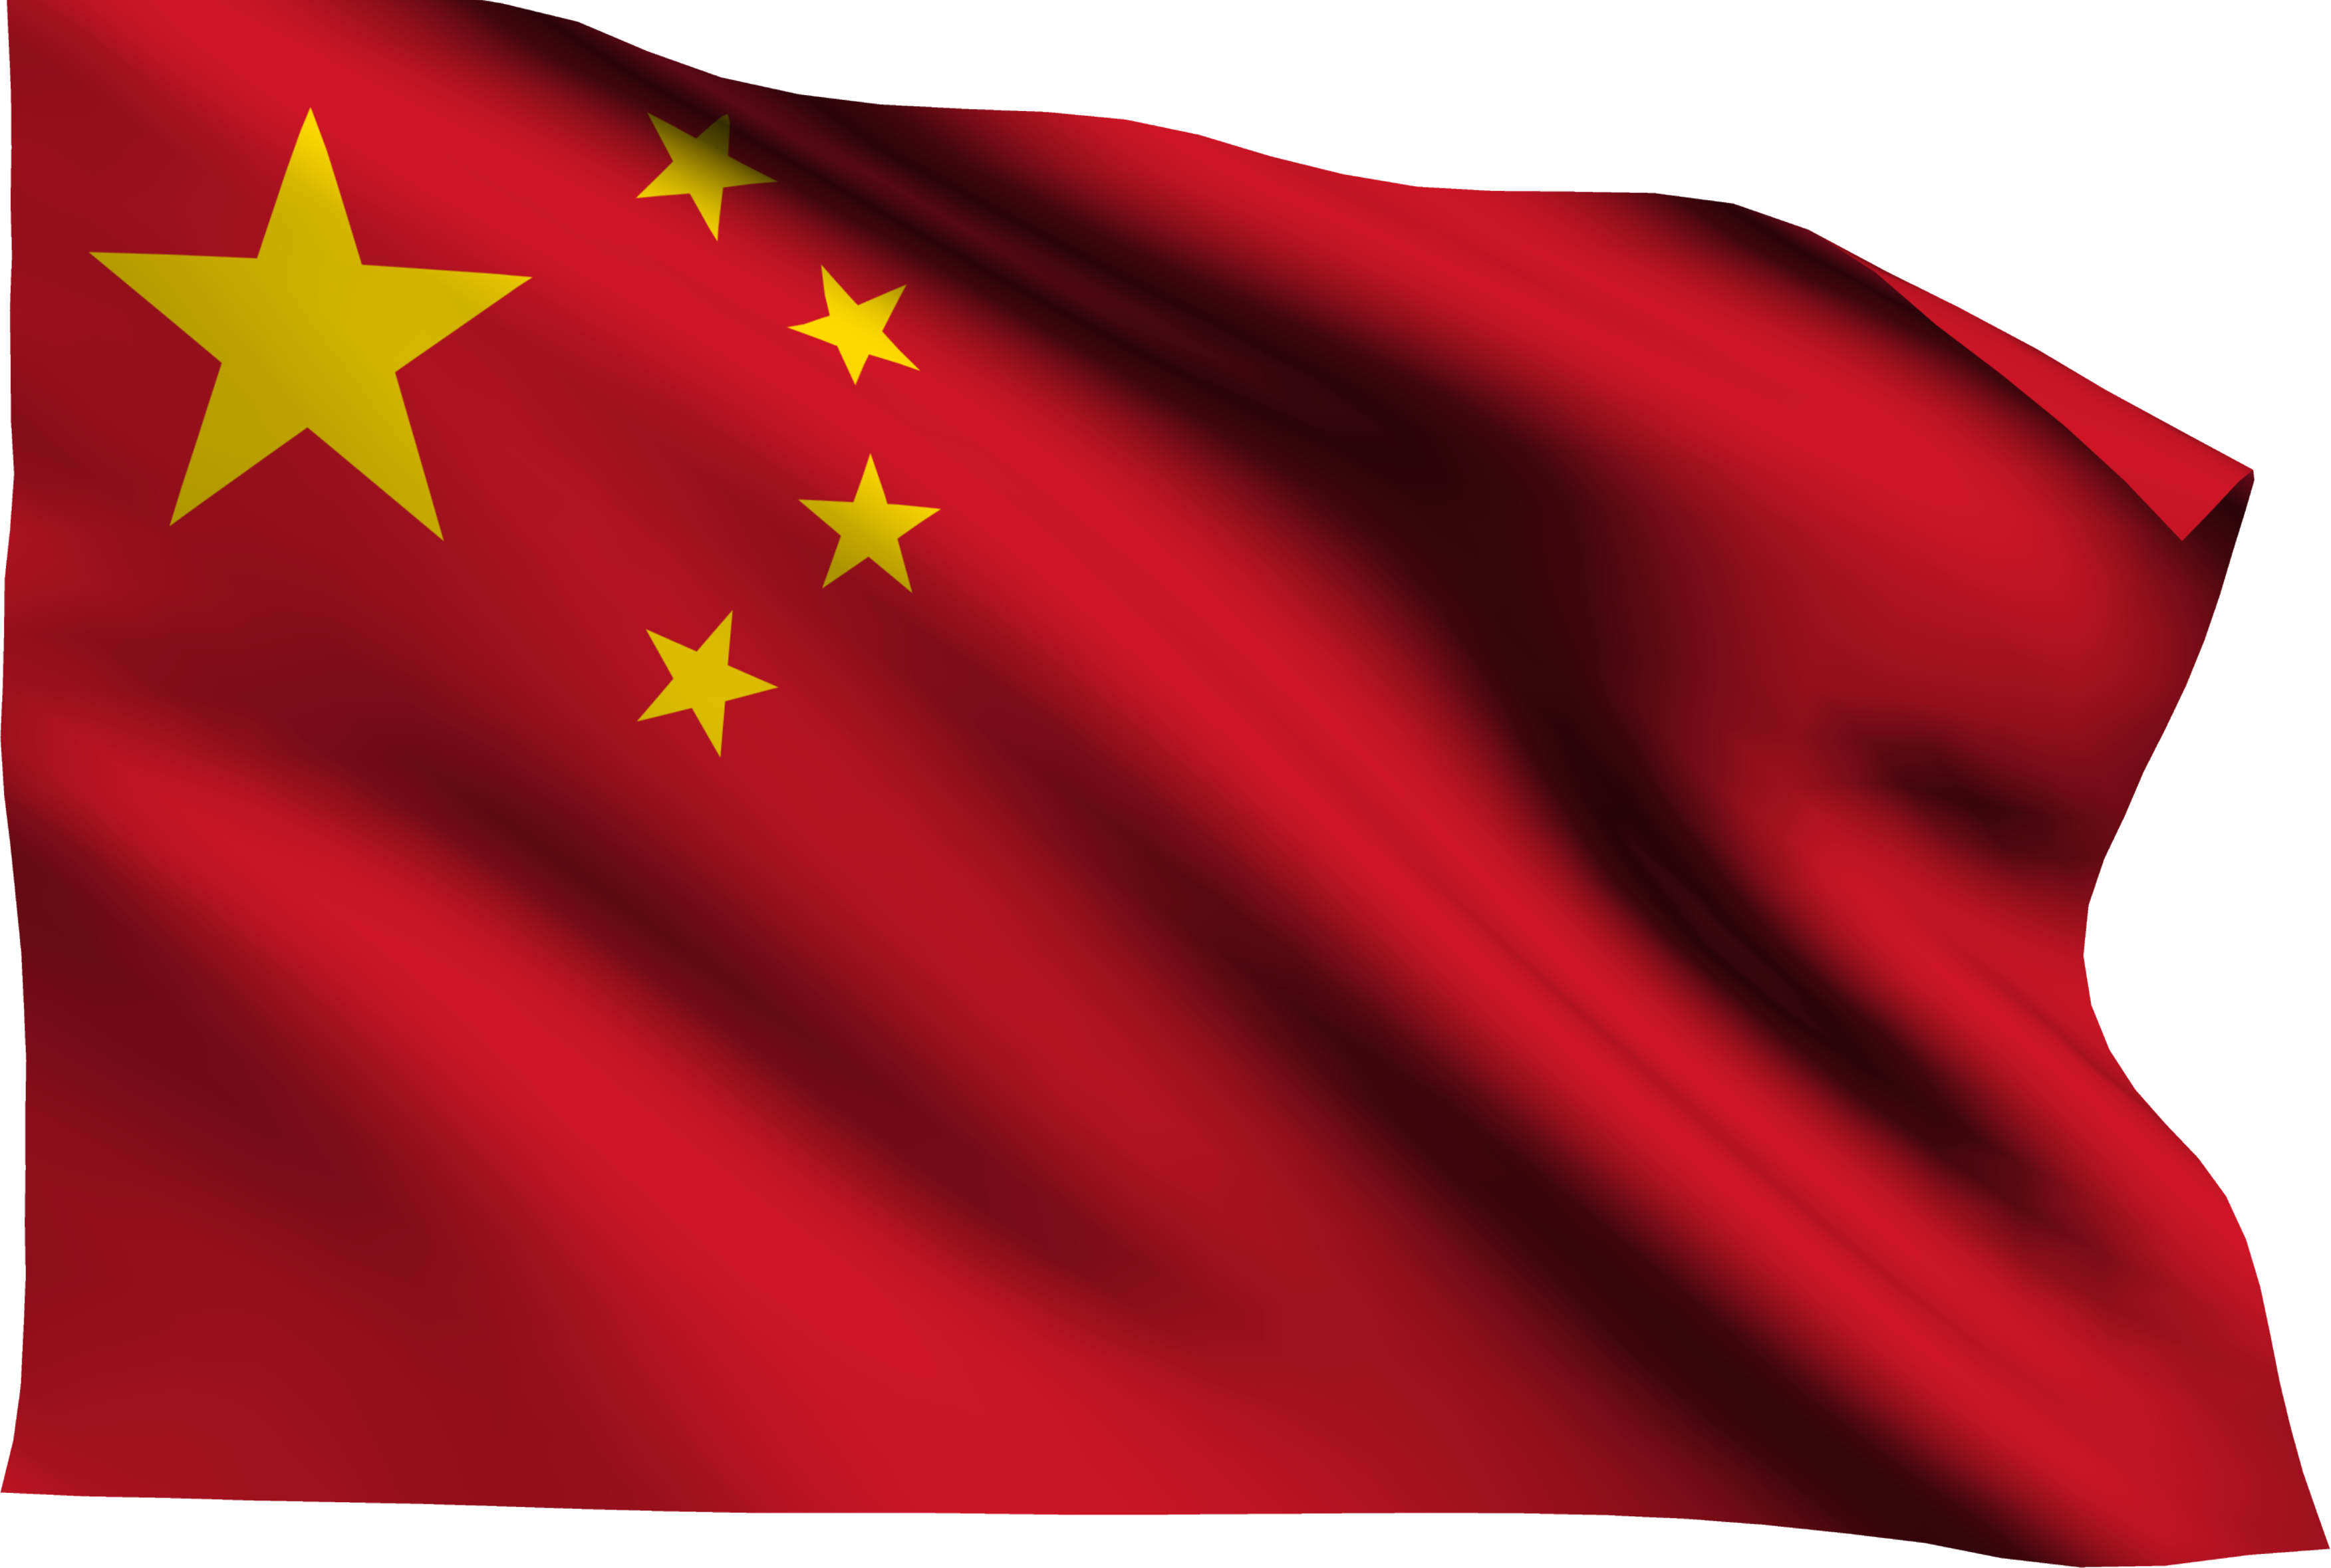 png 3505x2358 China transparent background - China PNG